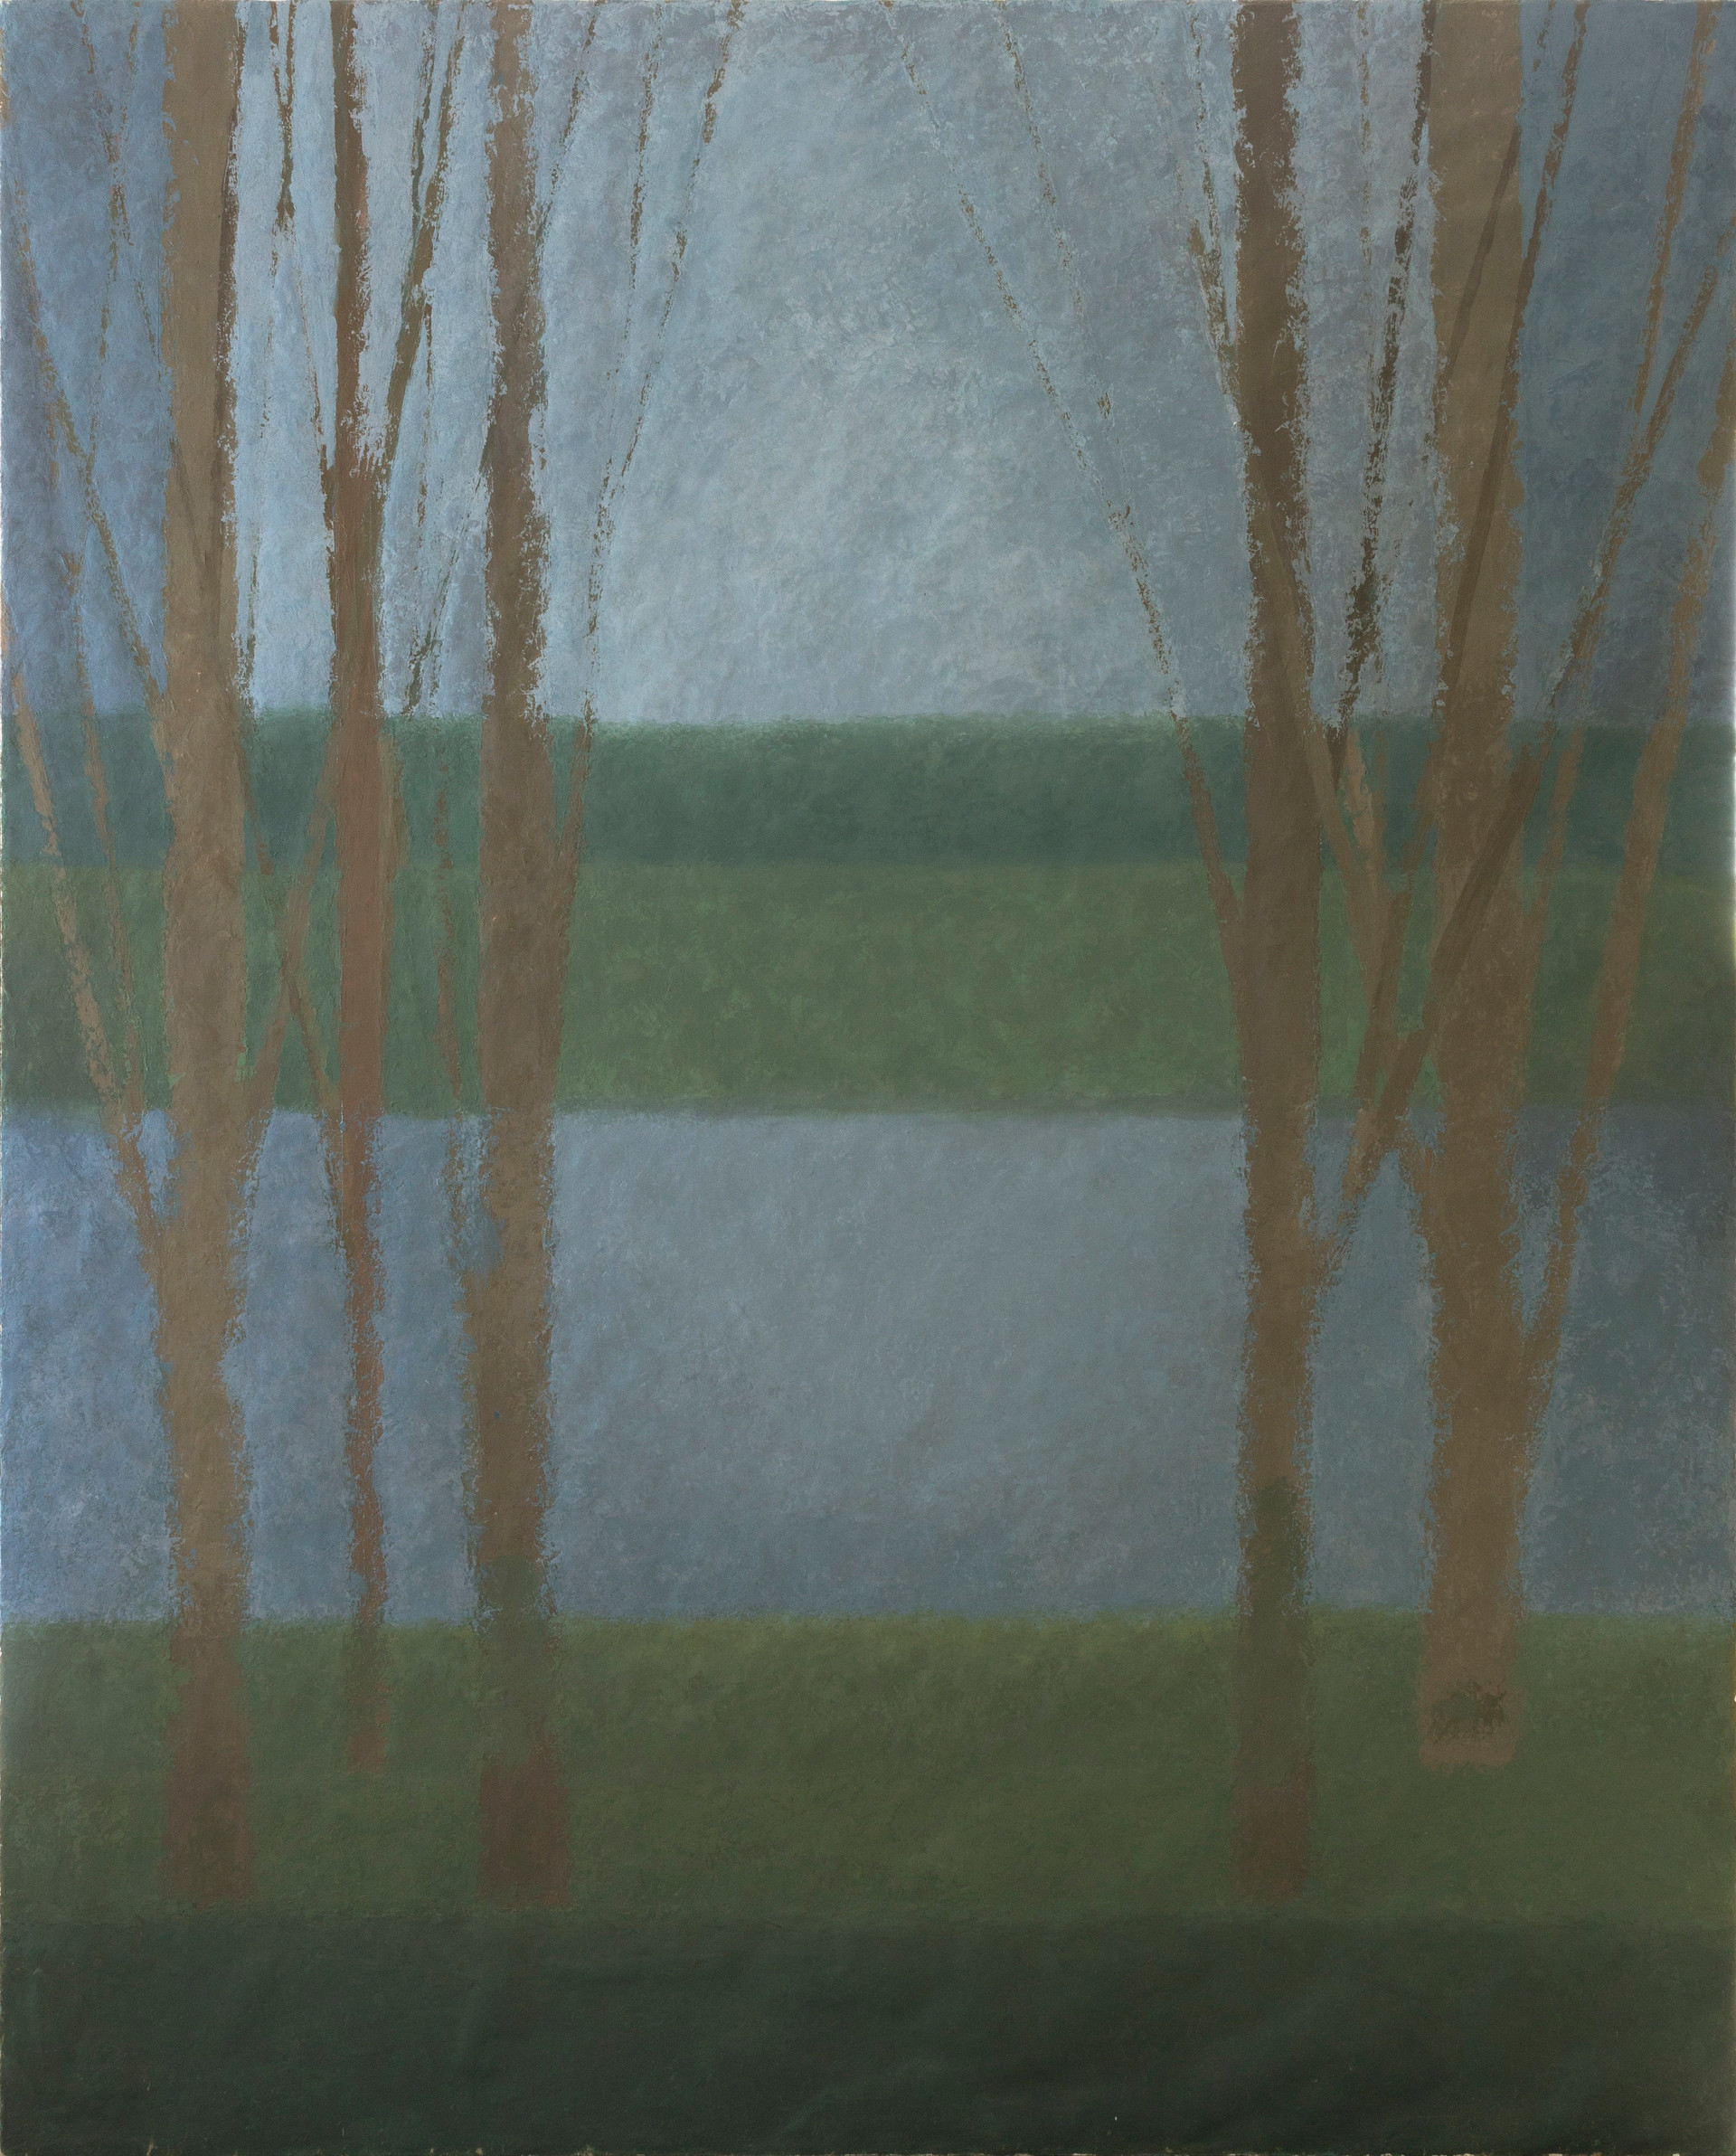 Untitled - trees with blue and green stripe background